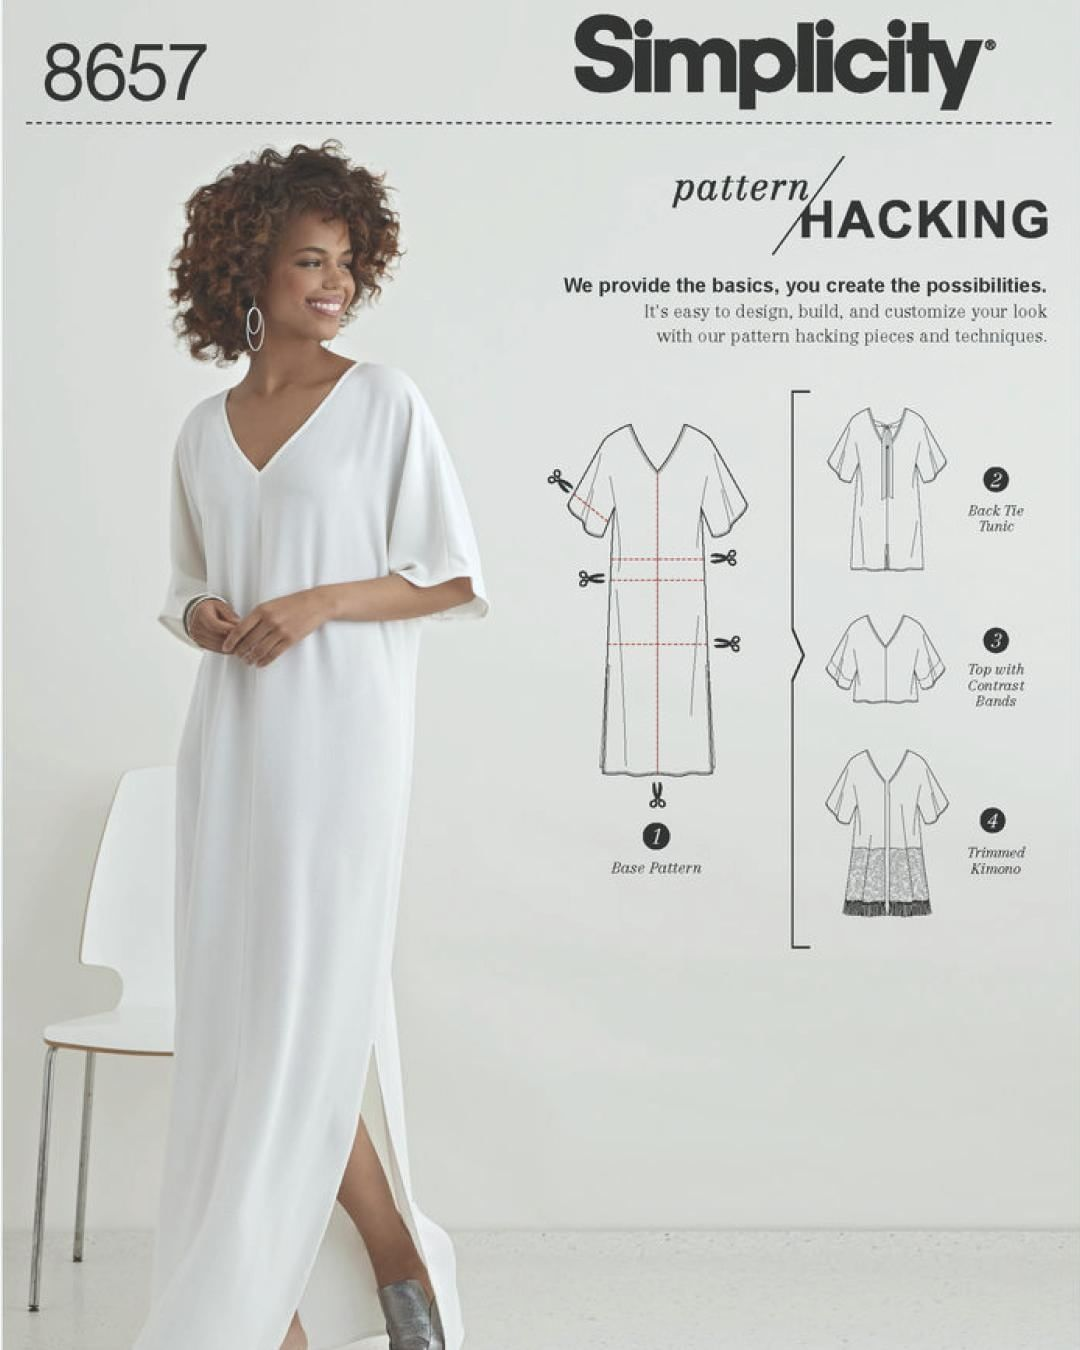 New Pattern Hack! How would spice up this simple shirt dress ...